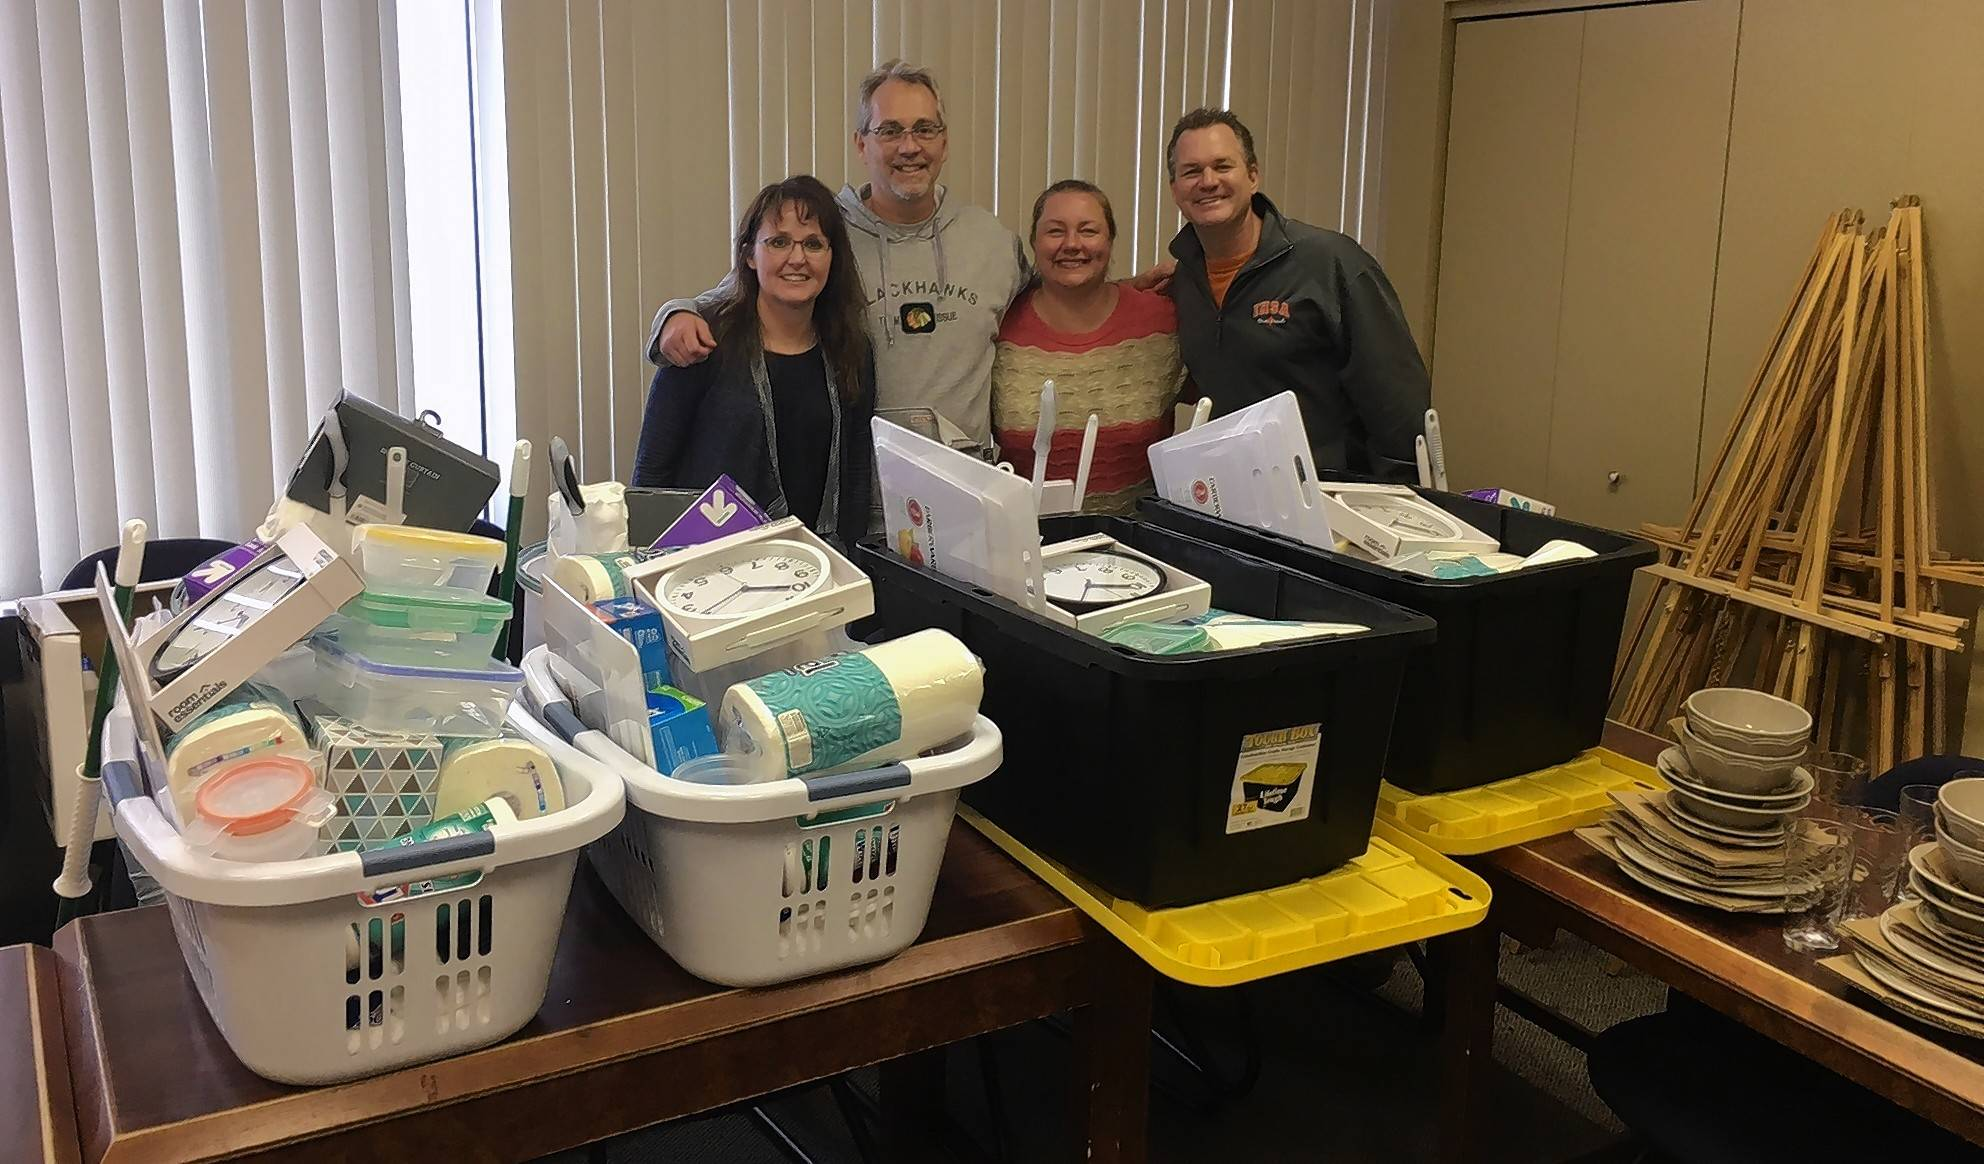 Corporate Ambassador XL Catlin donated and put together welcome home kits for newly housed Journeys clients.